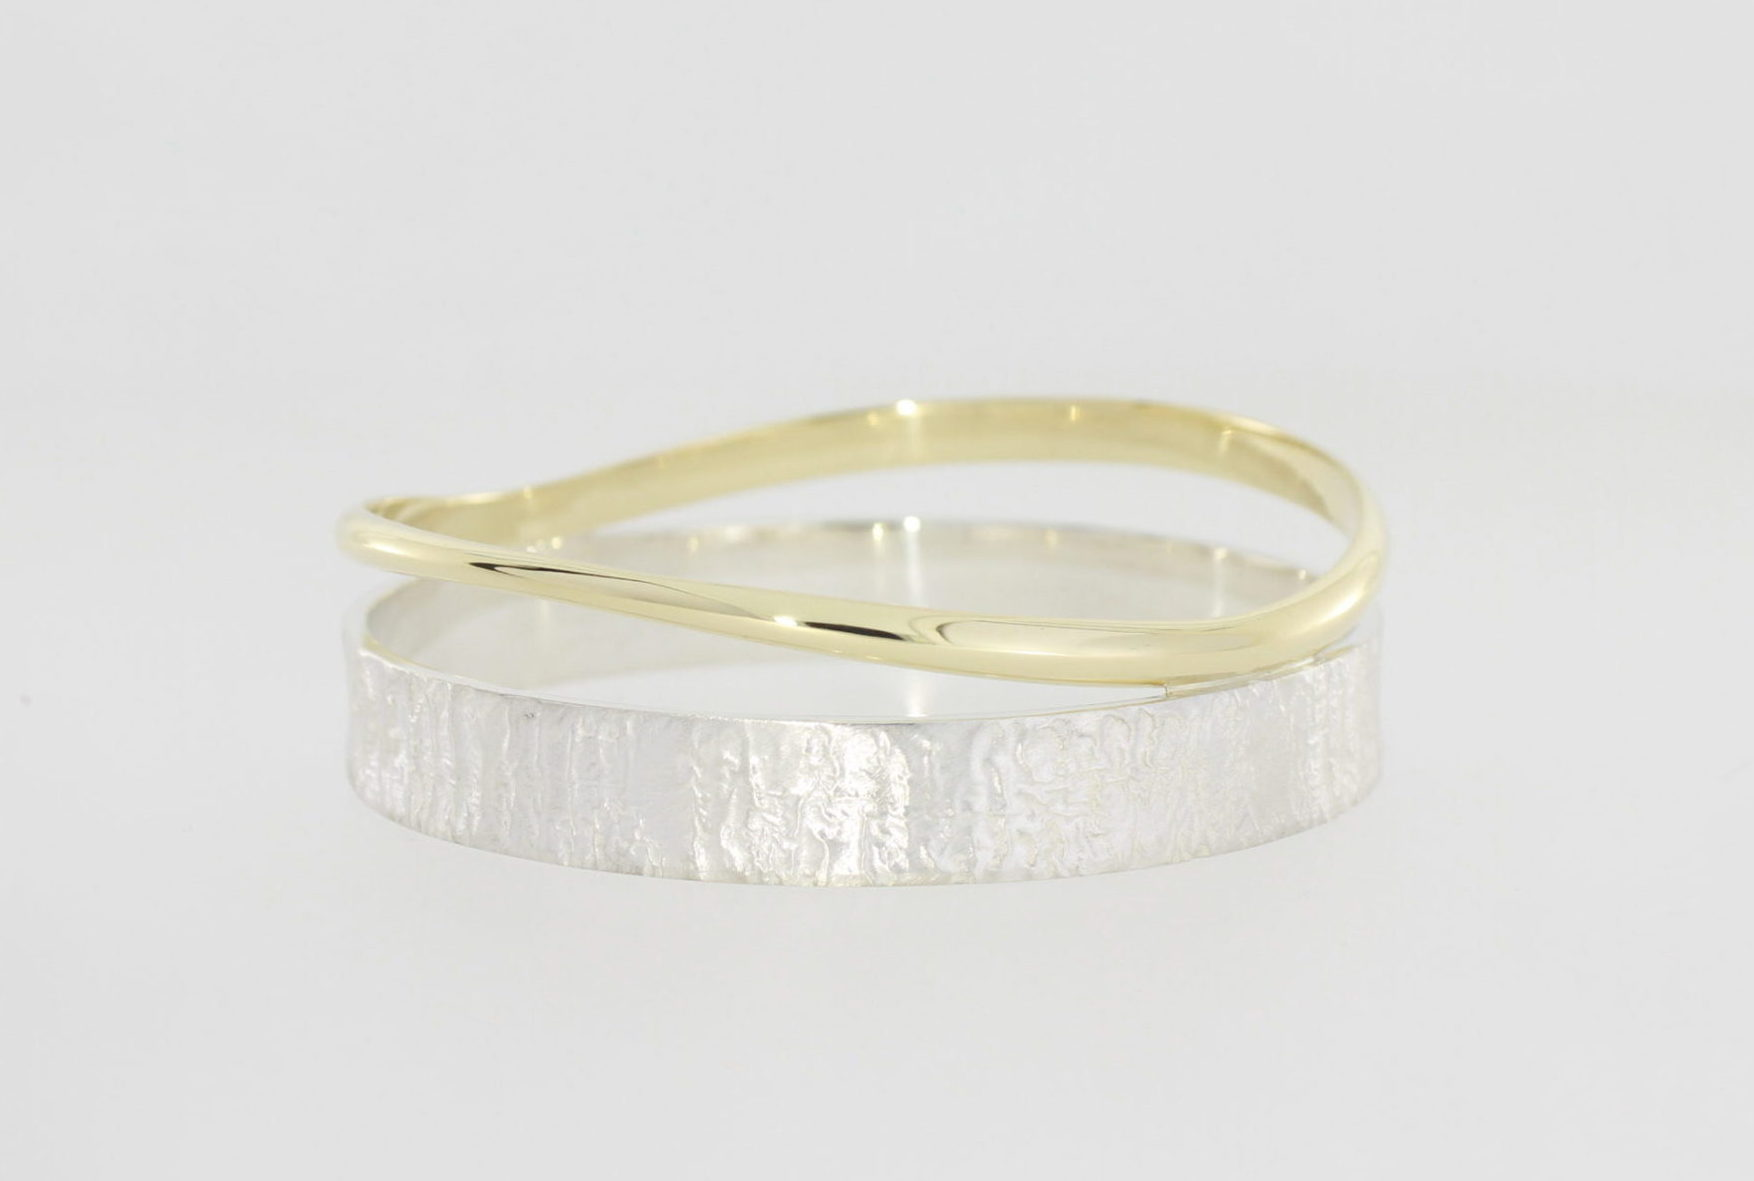 Payet reticulated silver & 9ct wave bracelet